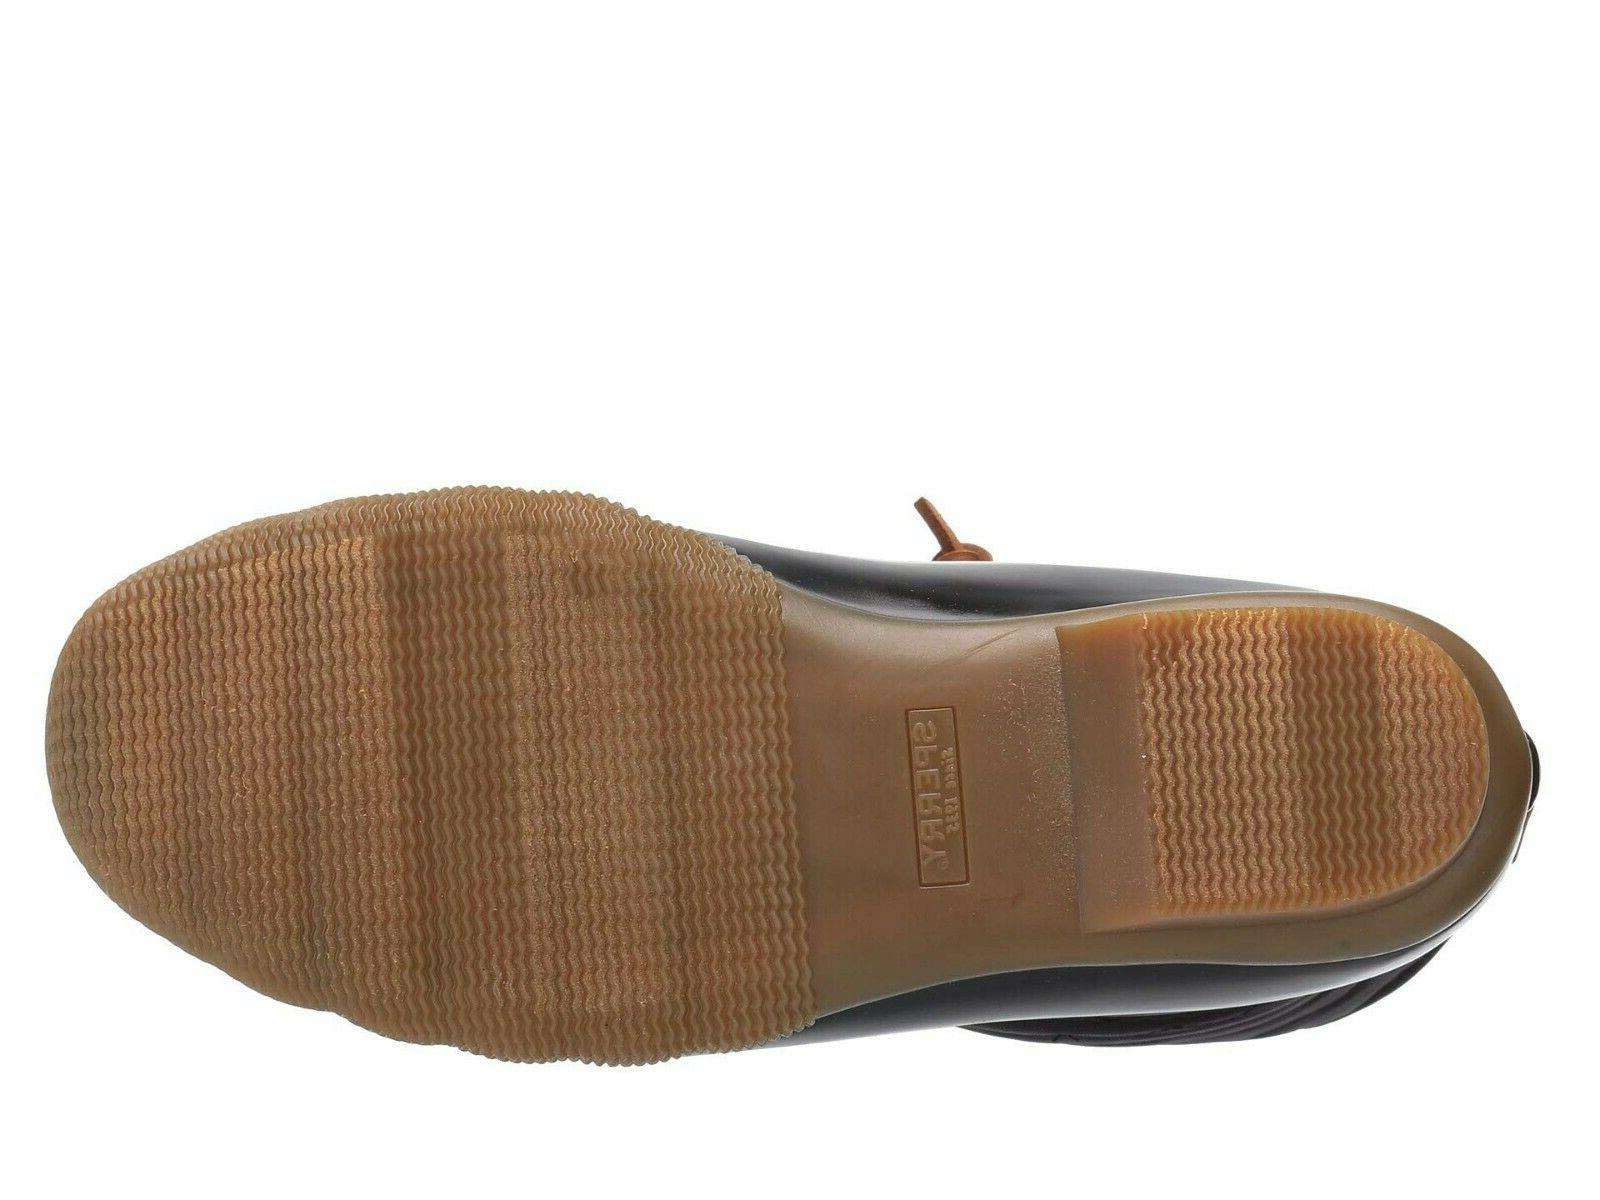 Sperry Top-Sider Chevron Quilted Nylon Duck Winter Snow